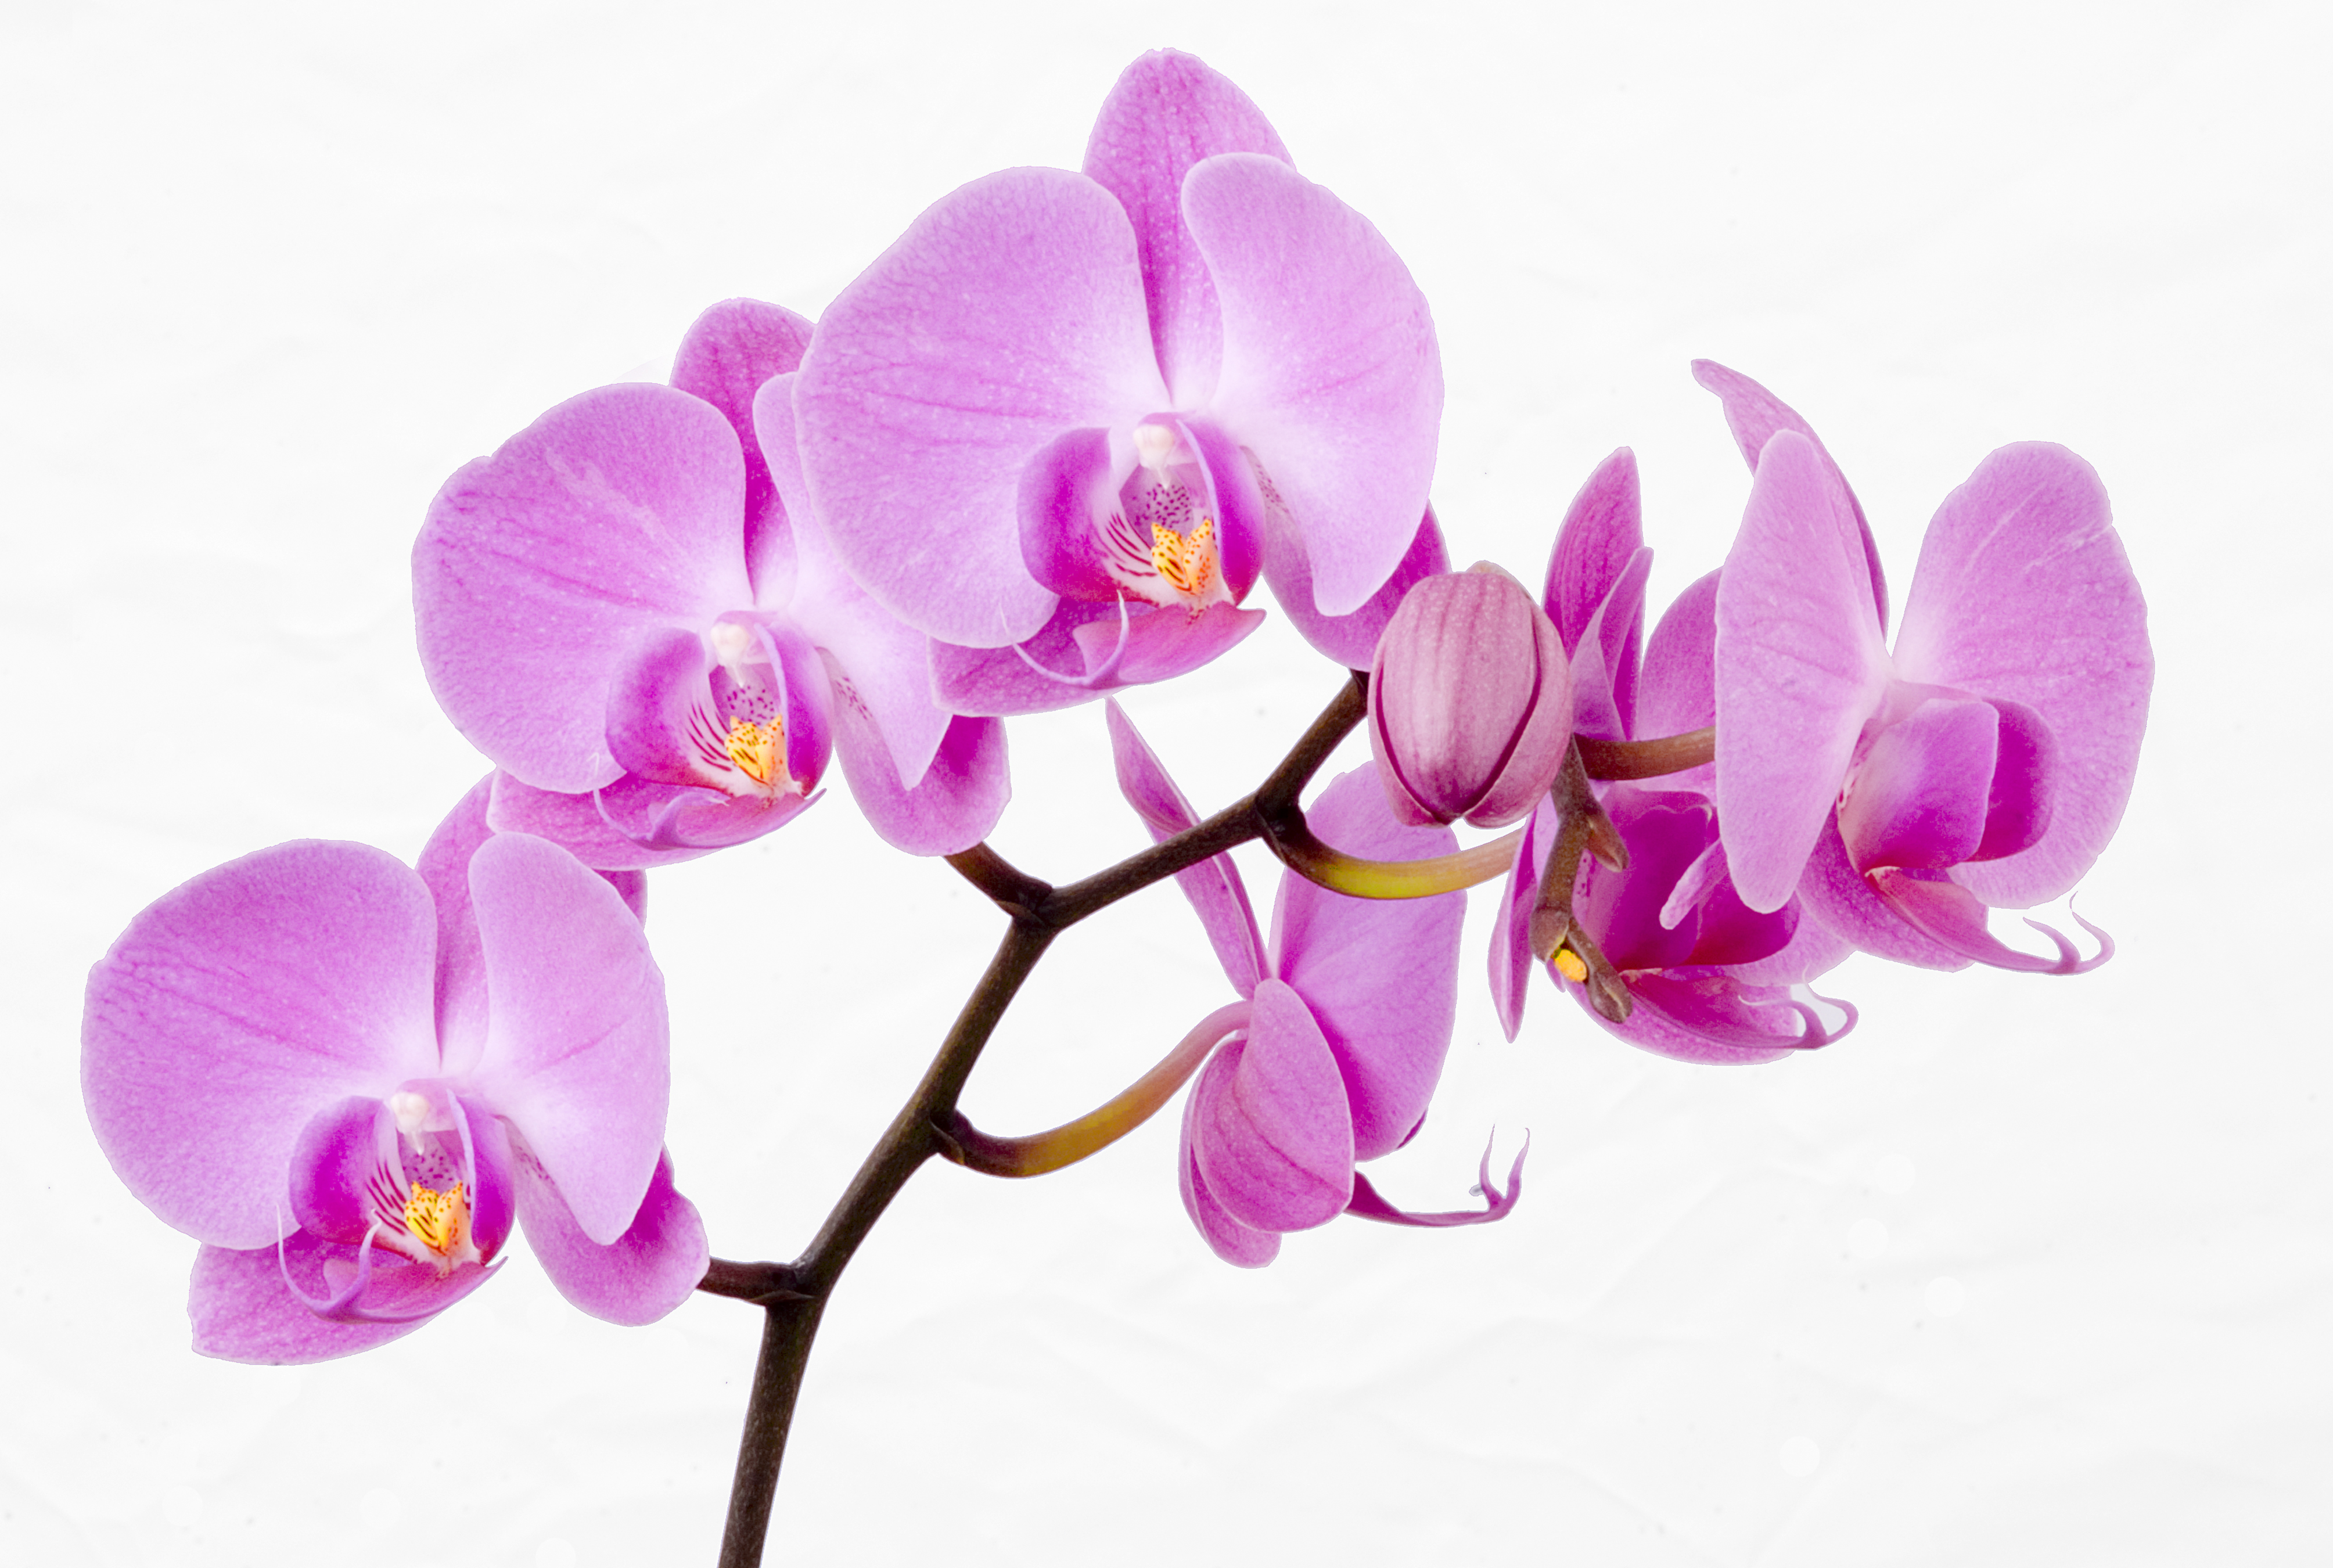 Wallpaper white pink lilac purple orchid Beautiful Mauve Orchid 4017x2700